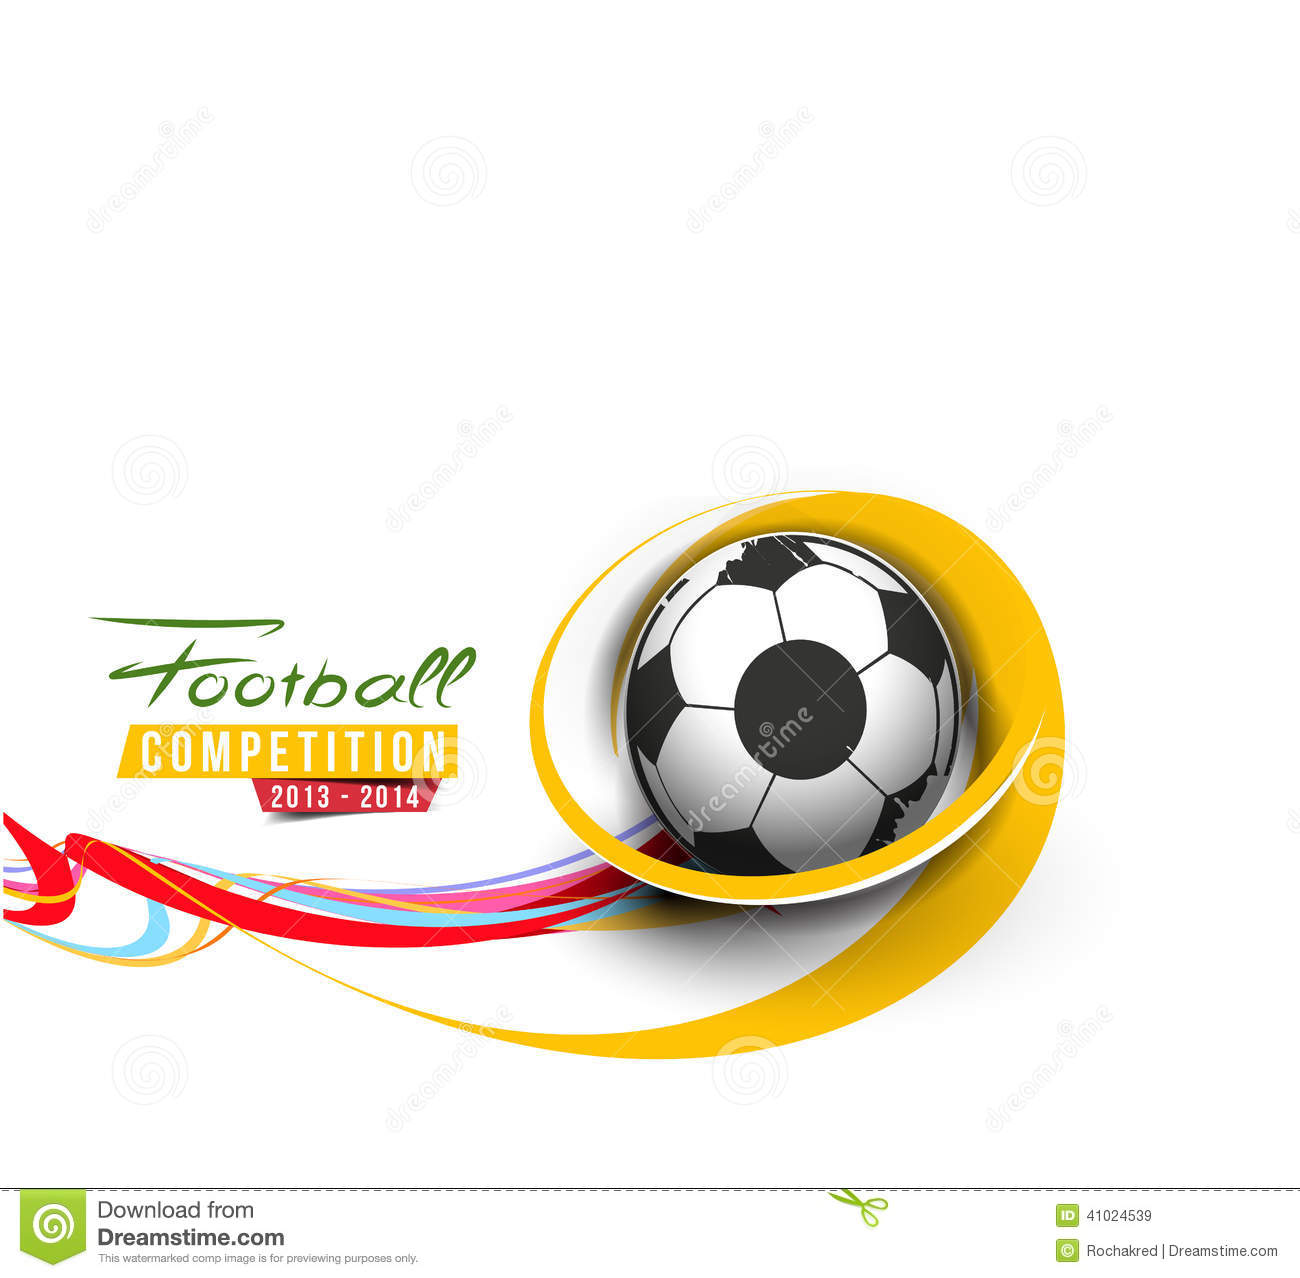 football poster template koni polycode co